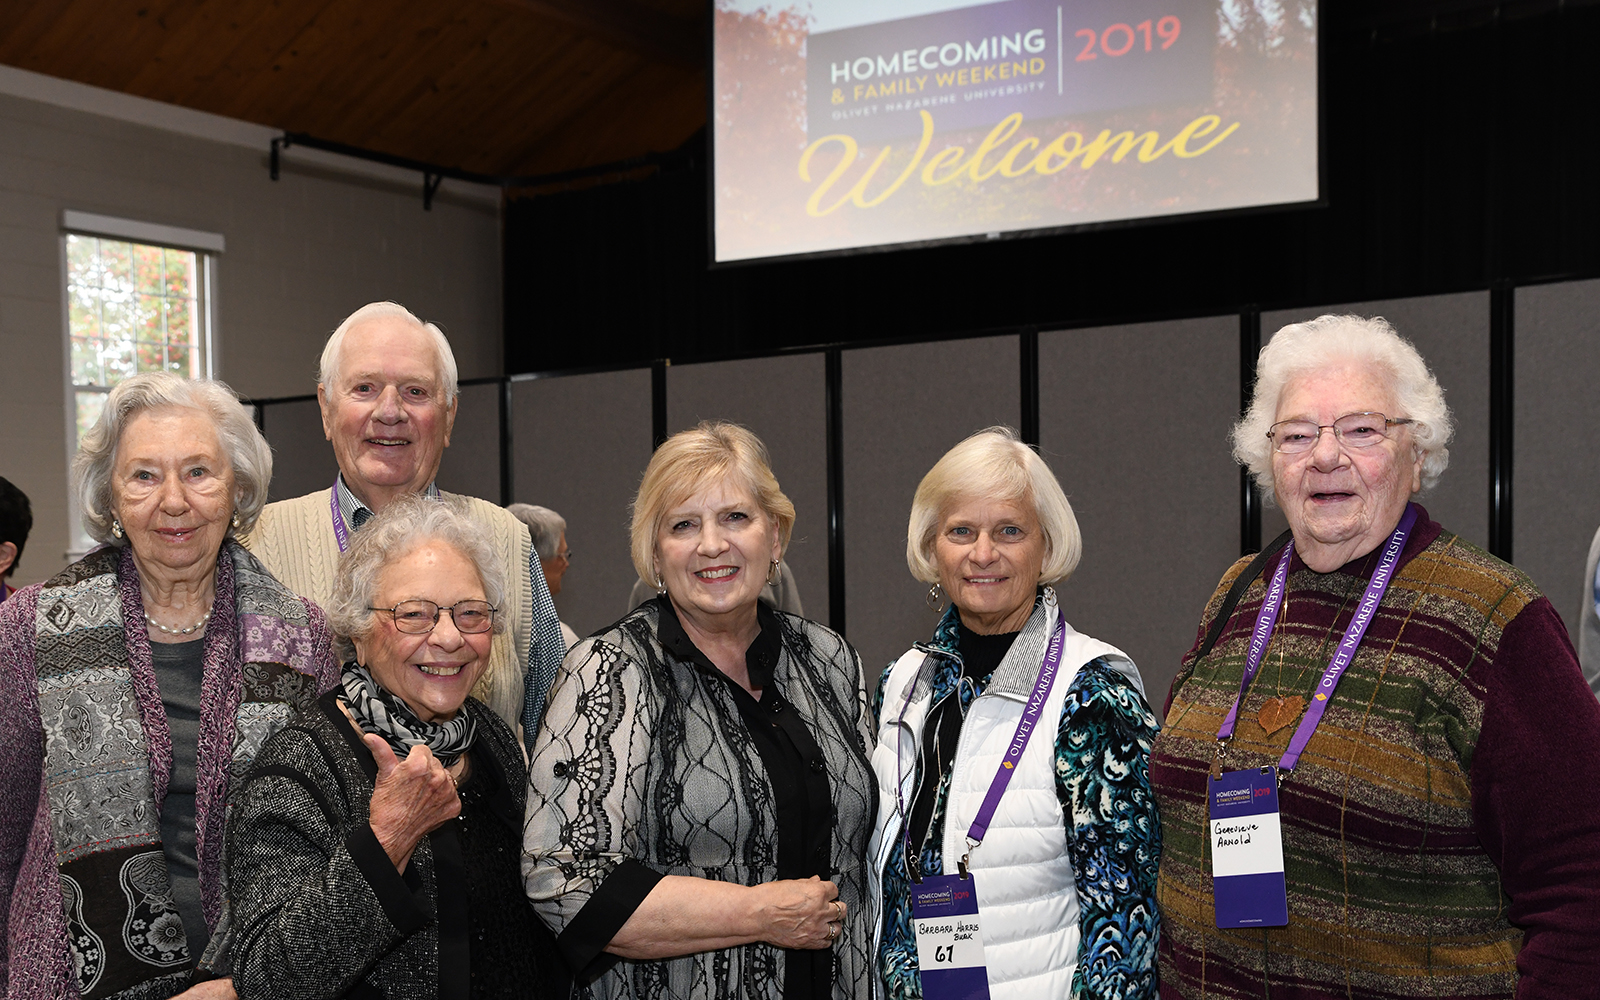 Olivet_homecoming_family_weekend_reunion_purple_gold_2019_web8.jpg